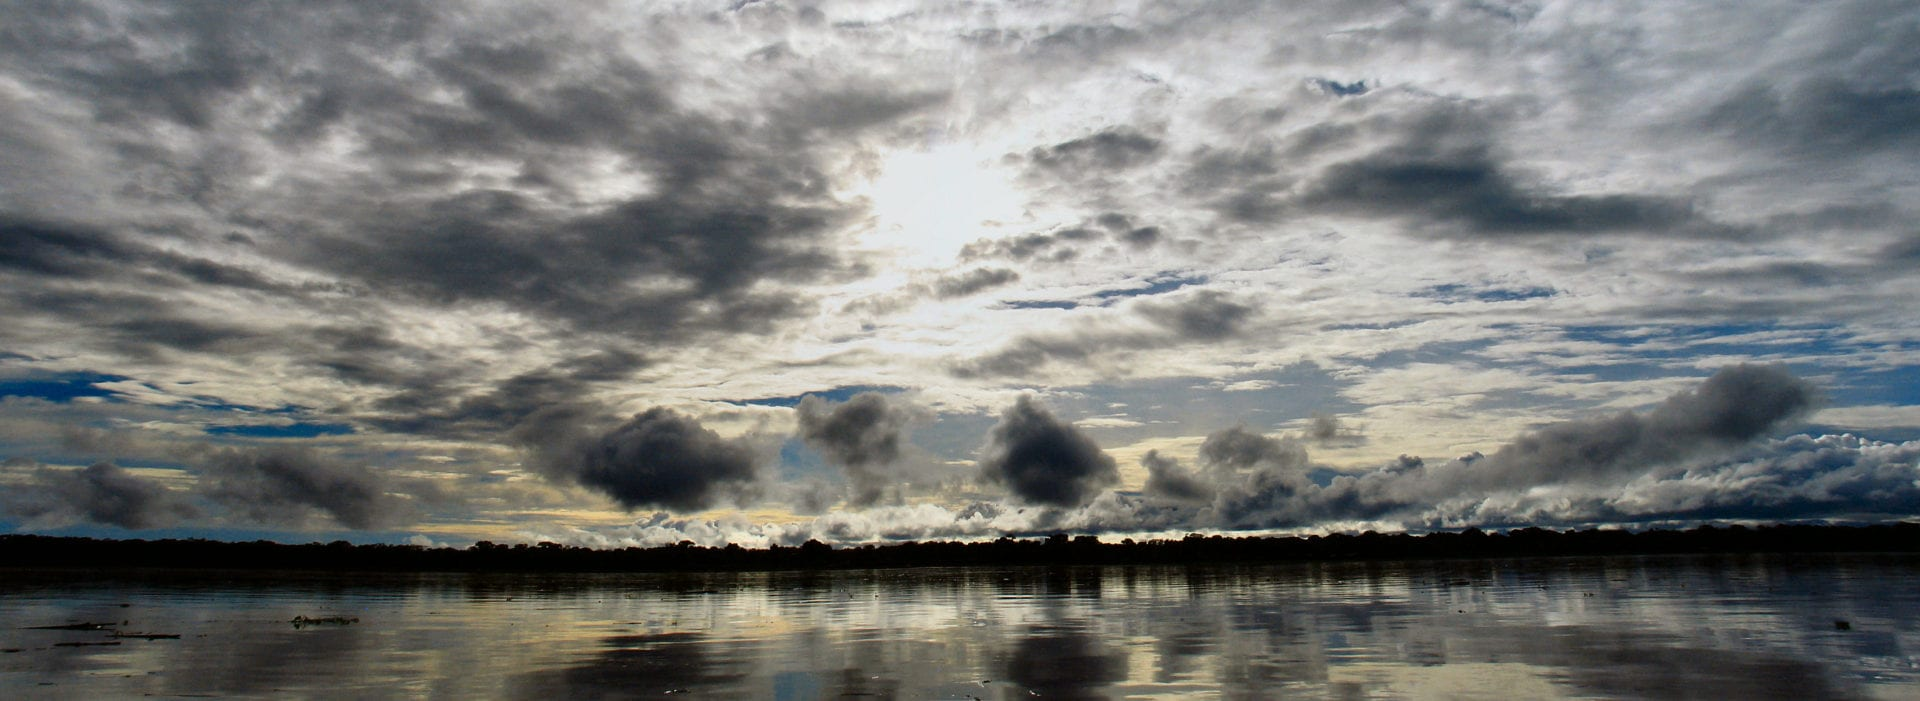 A panoramic shot of the amazon rainforest